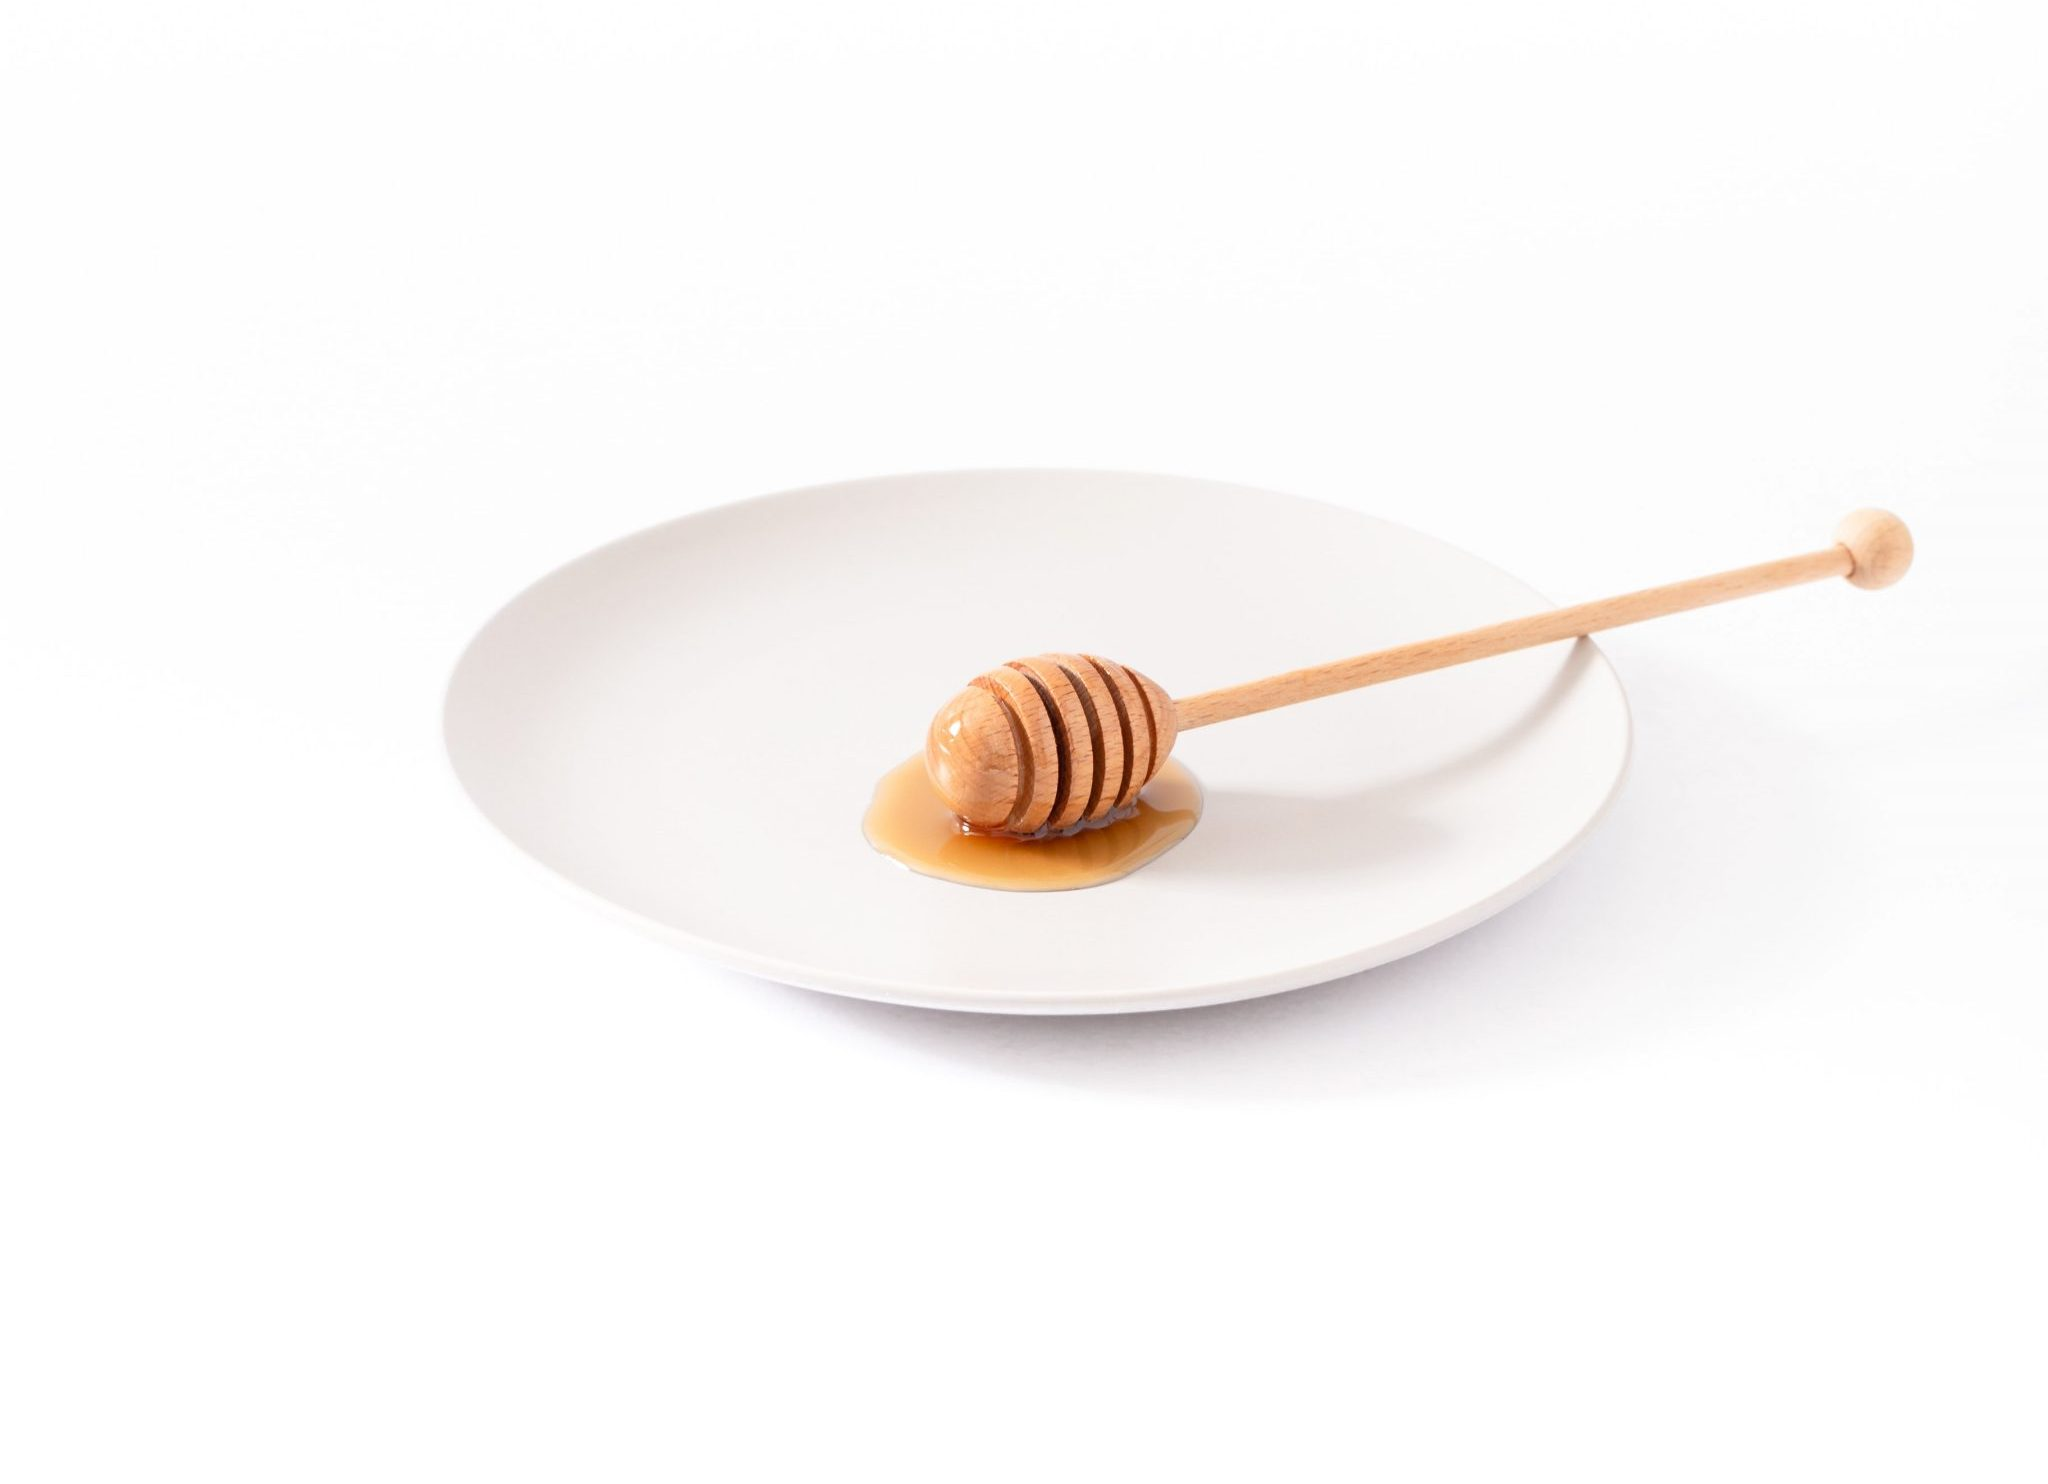 natural sweetener honey on a plate